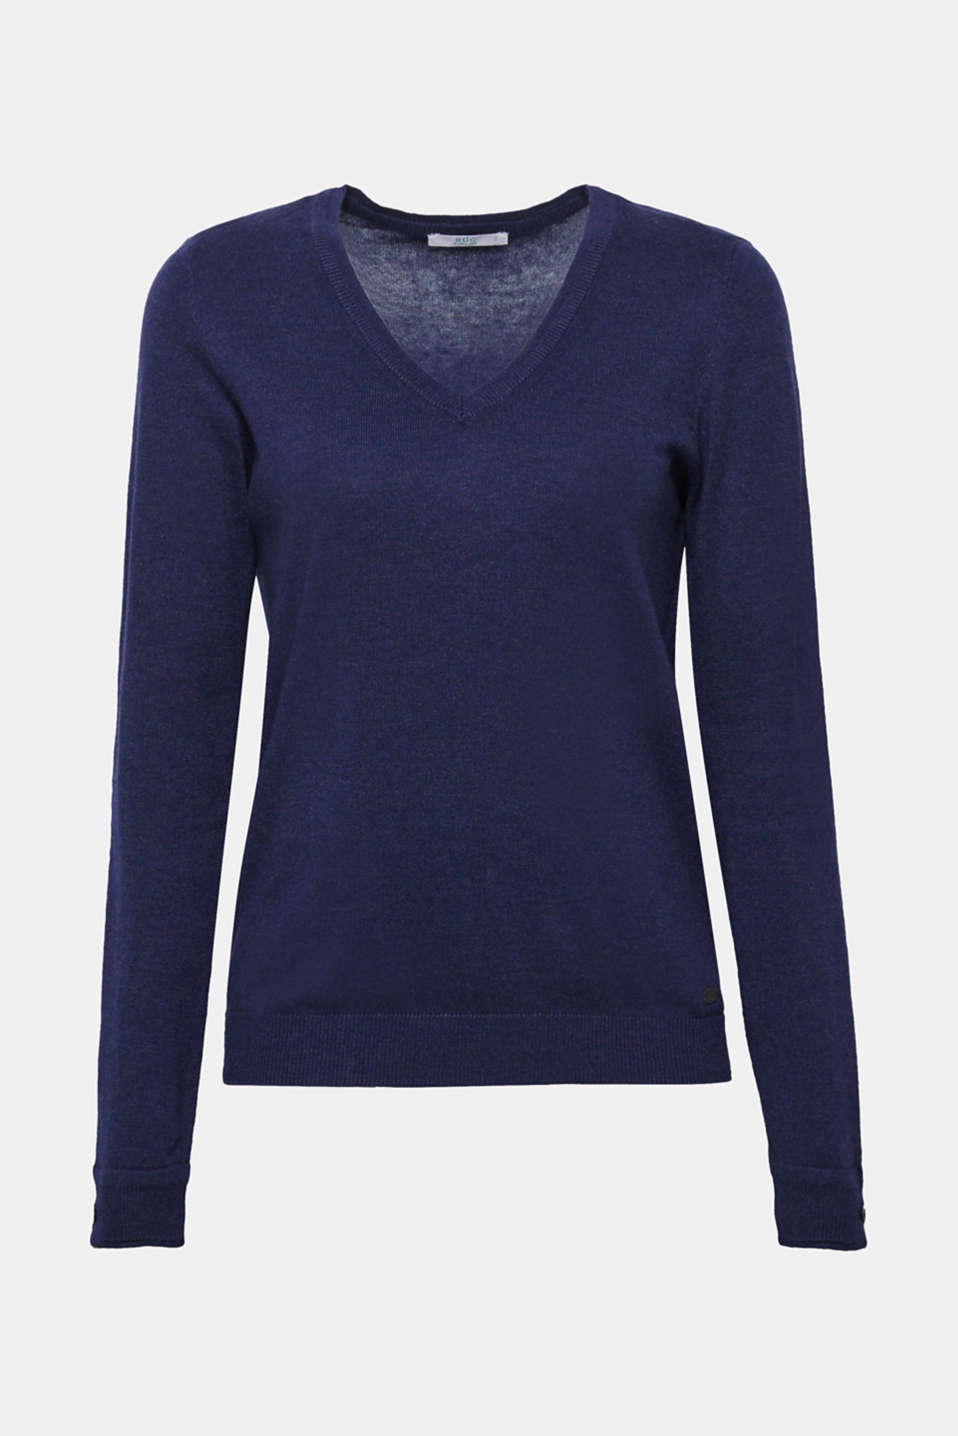 This understated V-neck jumper containing environmentally-friendly, premium organic cotton is an indispensable basic.